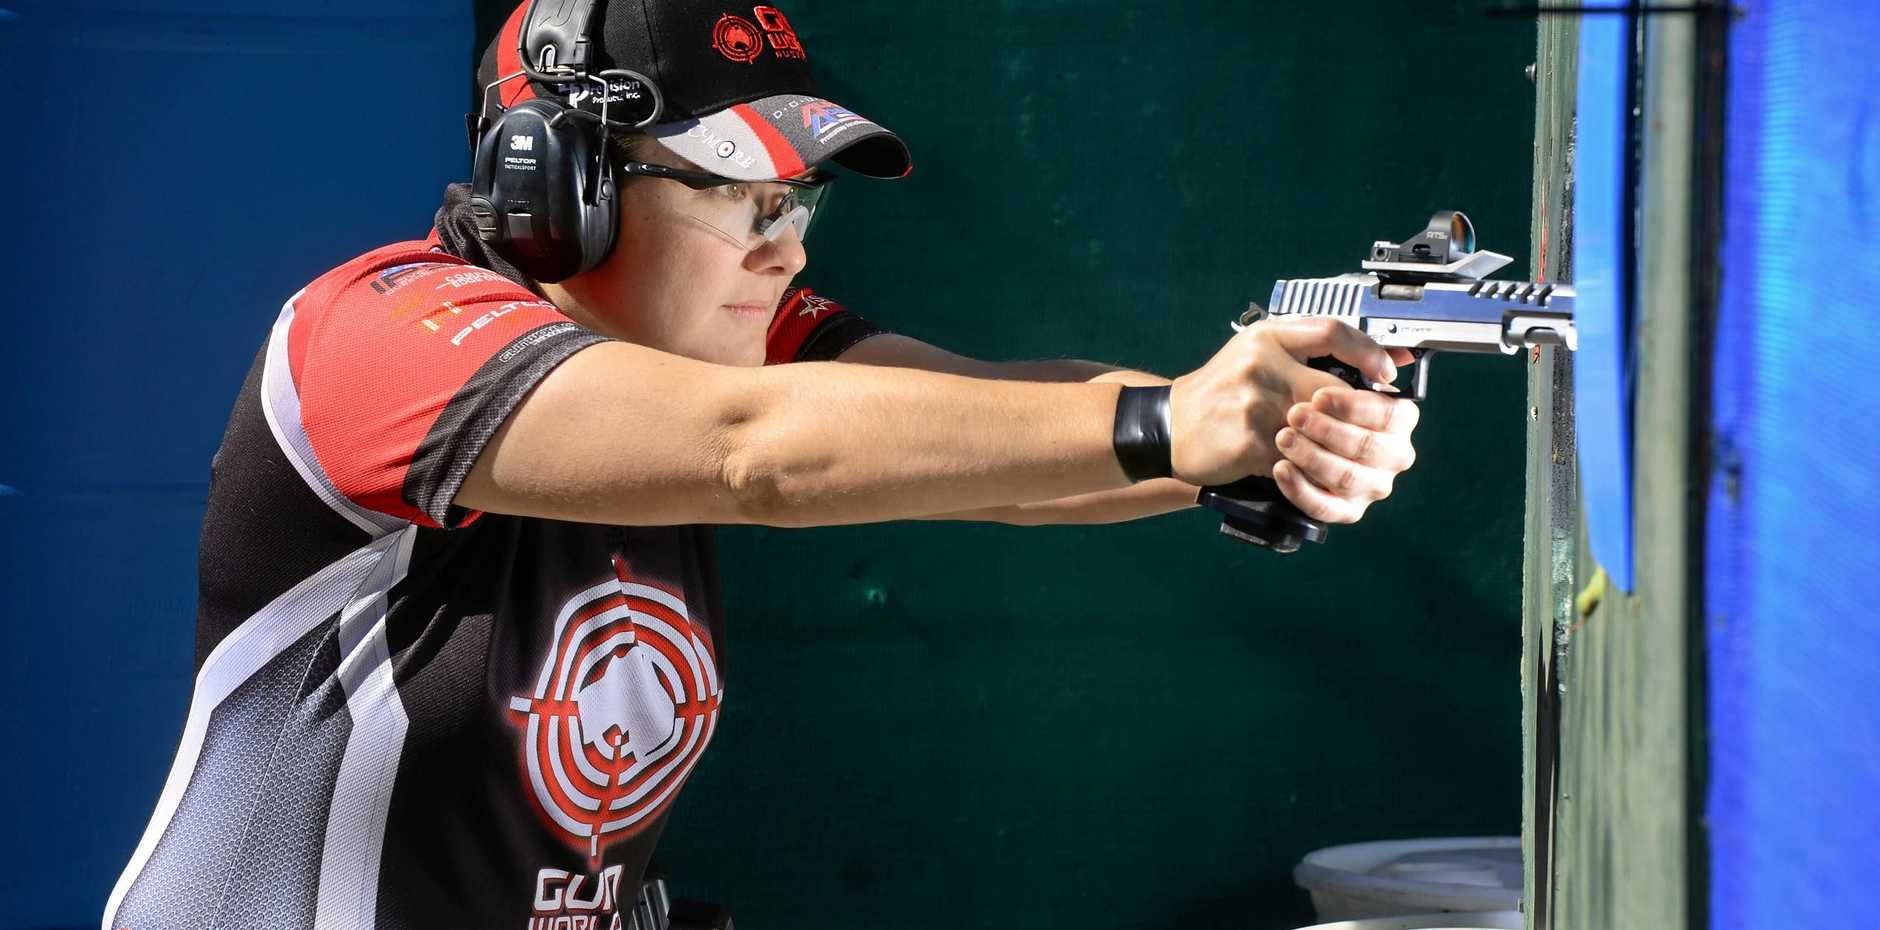 ON TARGET: Karla Blowers won her third consecutive title at the IPSC Handgun World Shoot, and is already making plans to defend the title at the next competition in three year's time.